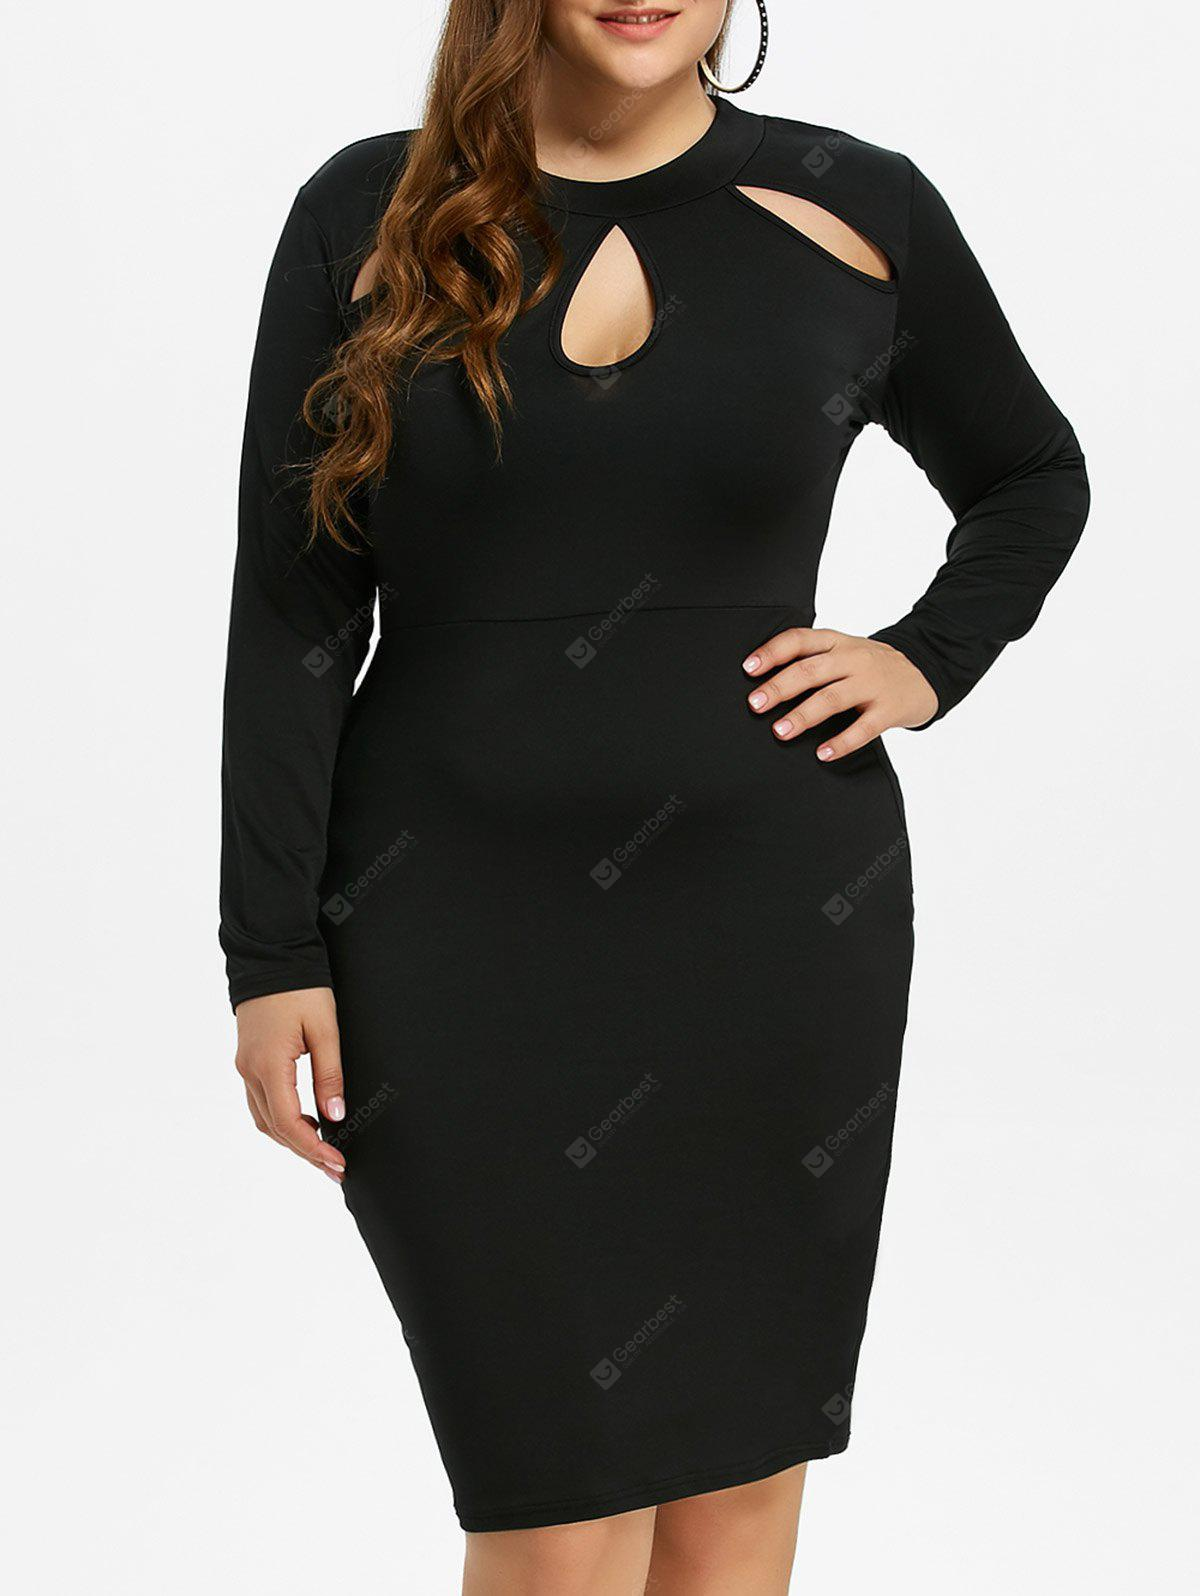 BLACK 2XL Plus Size Sheath Dress with Long Sleeves